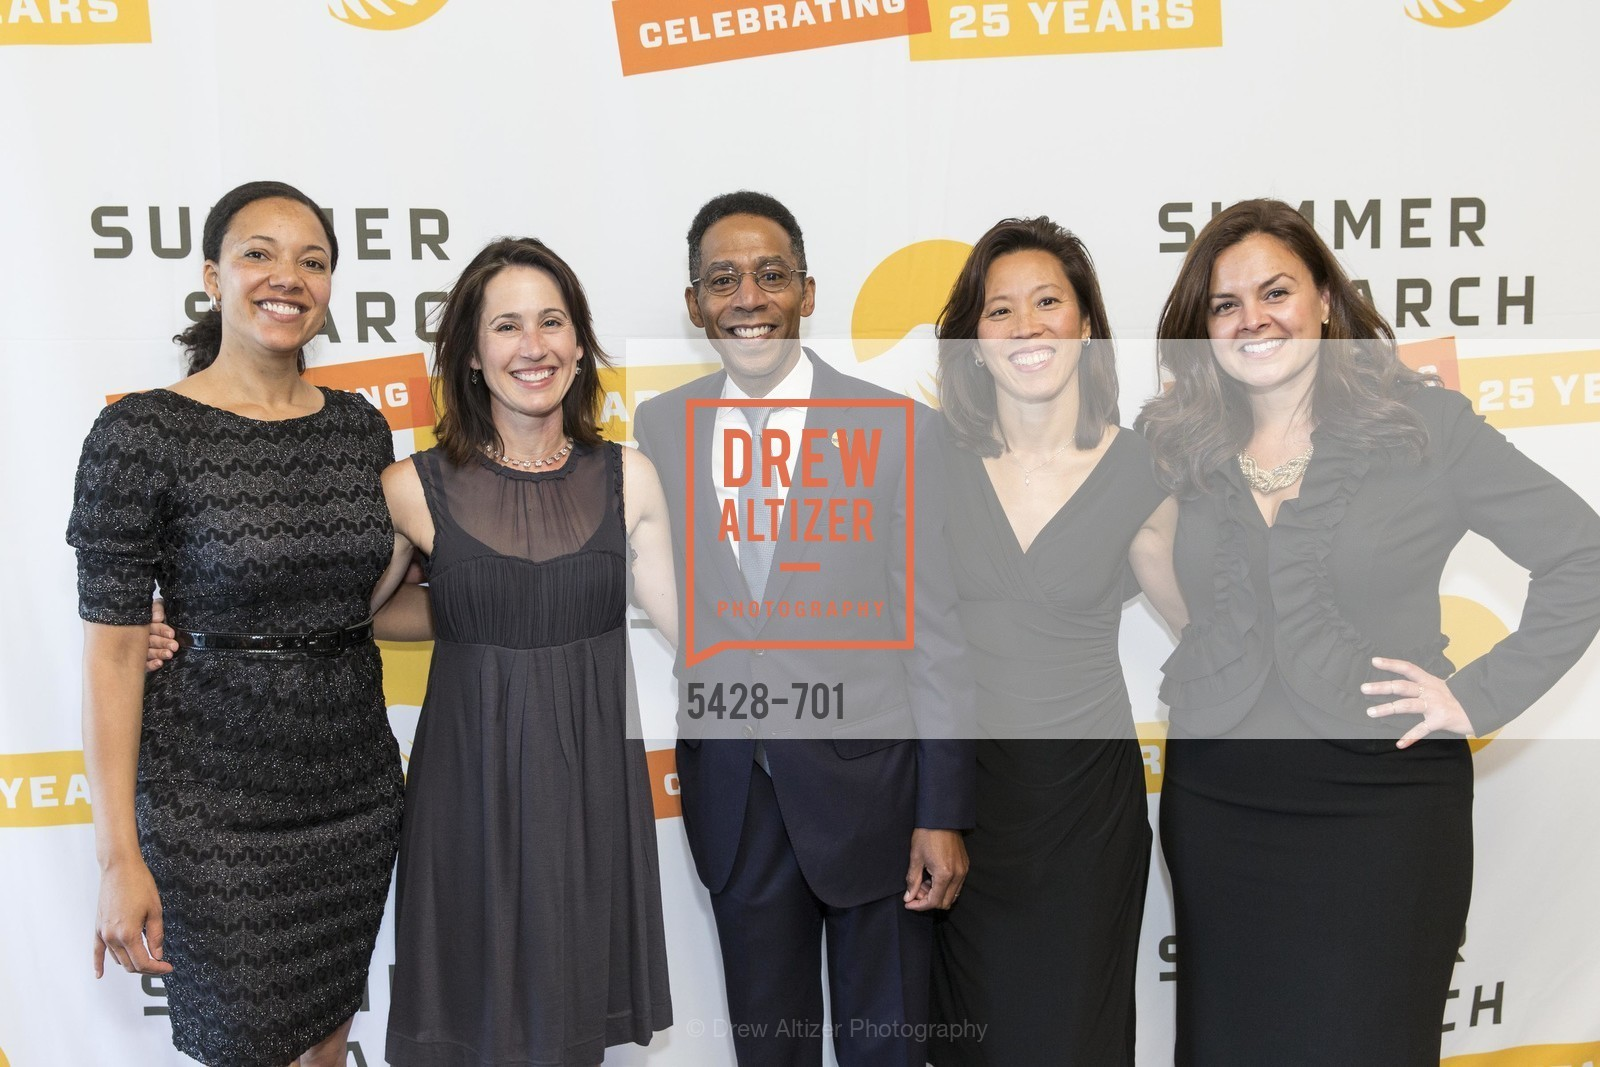 Amy Saxton, Liz Hurst, Kevin Gay, Sandra LaFleur, SUMMER SEARCH San Francisco 25th Anniversary, US, May 7th, 2015,Drew Altizer, Drew Altizer Photography, full-service agency, private events, San Francisco photographer, photographer california